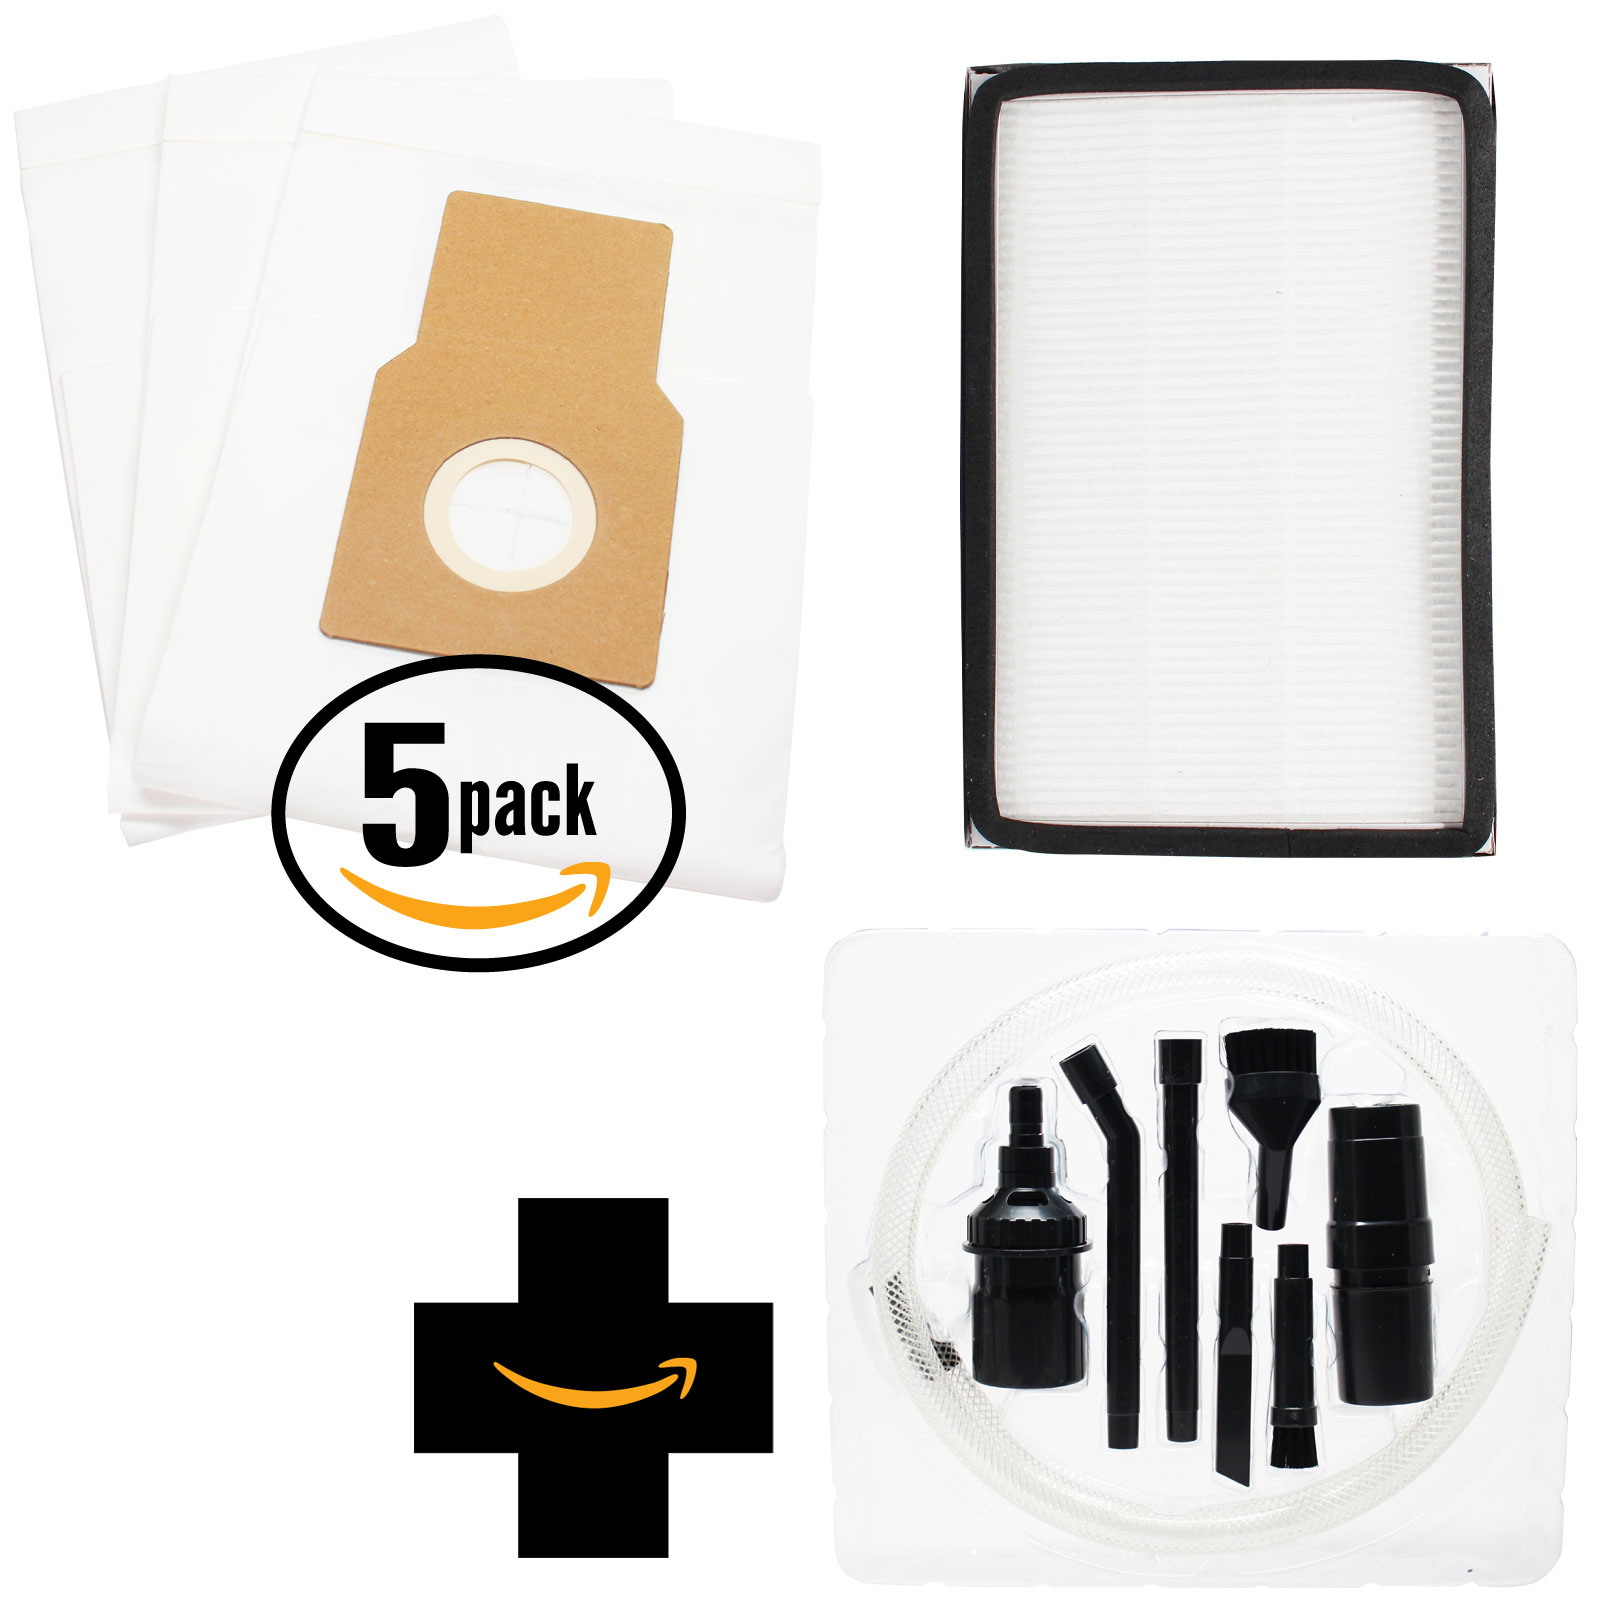 15 Replacement Kenmore 11635922500 Vacuum Bags & 1 HEPA Filter with 7-Piece Micro Vacuum Attachment Kit - Compatible Kenmore 50688, 50690, Type O, Type U & 86889, EF-1 Filter